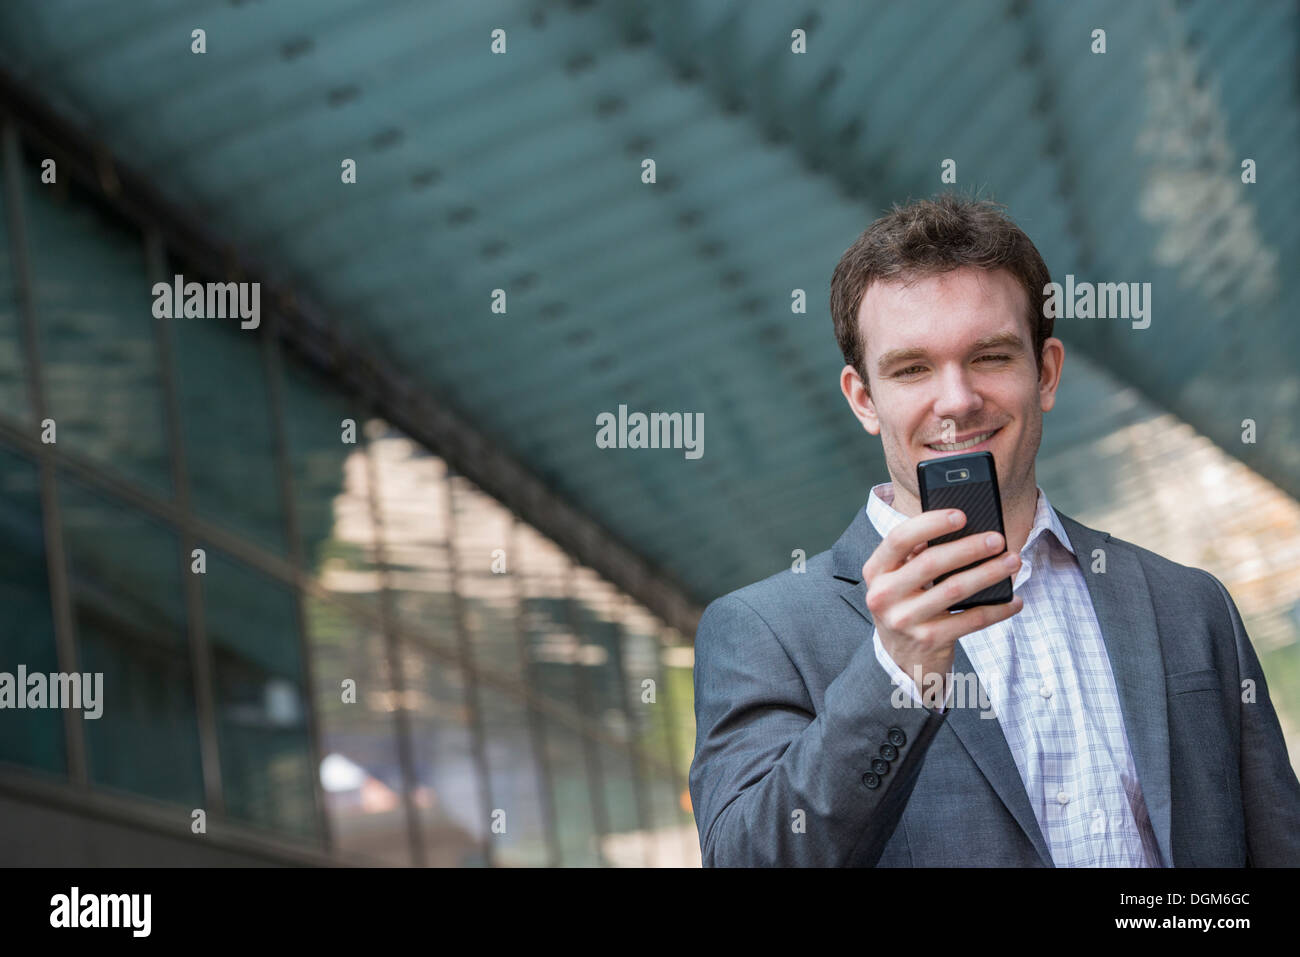 Summer. A young man in a grey suit and blue tie. Using a smart phone. - Stock Image